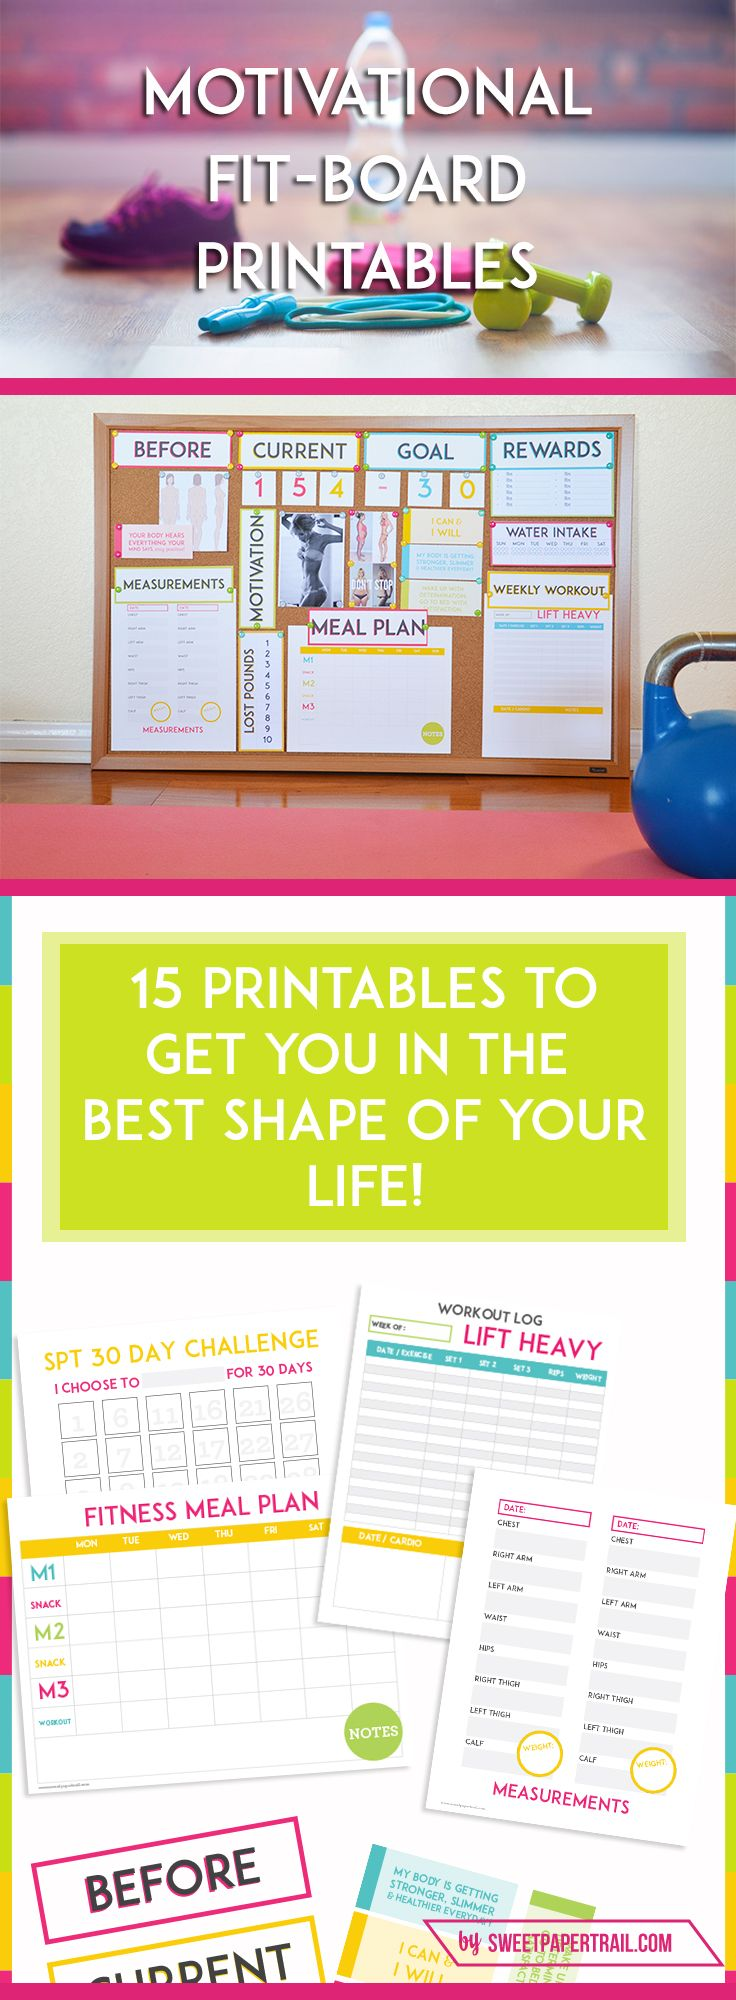 How can i lose belly fat in 2 days